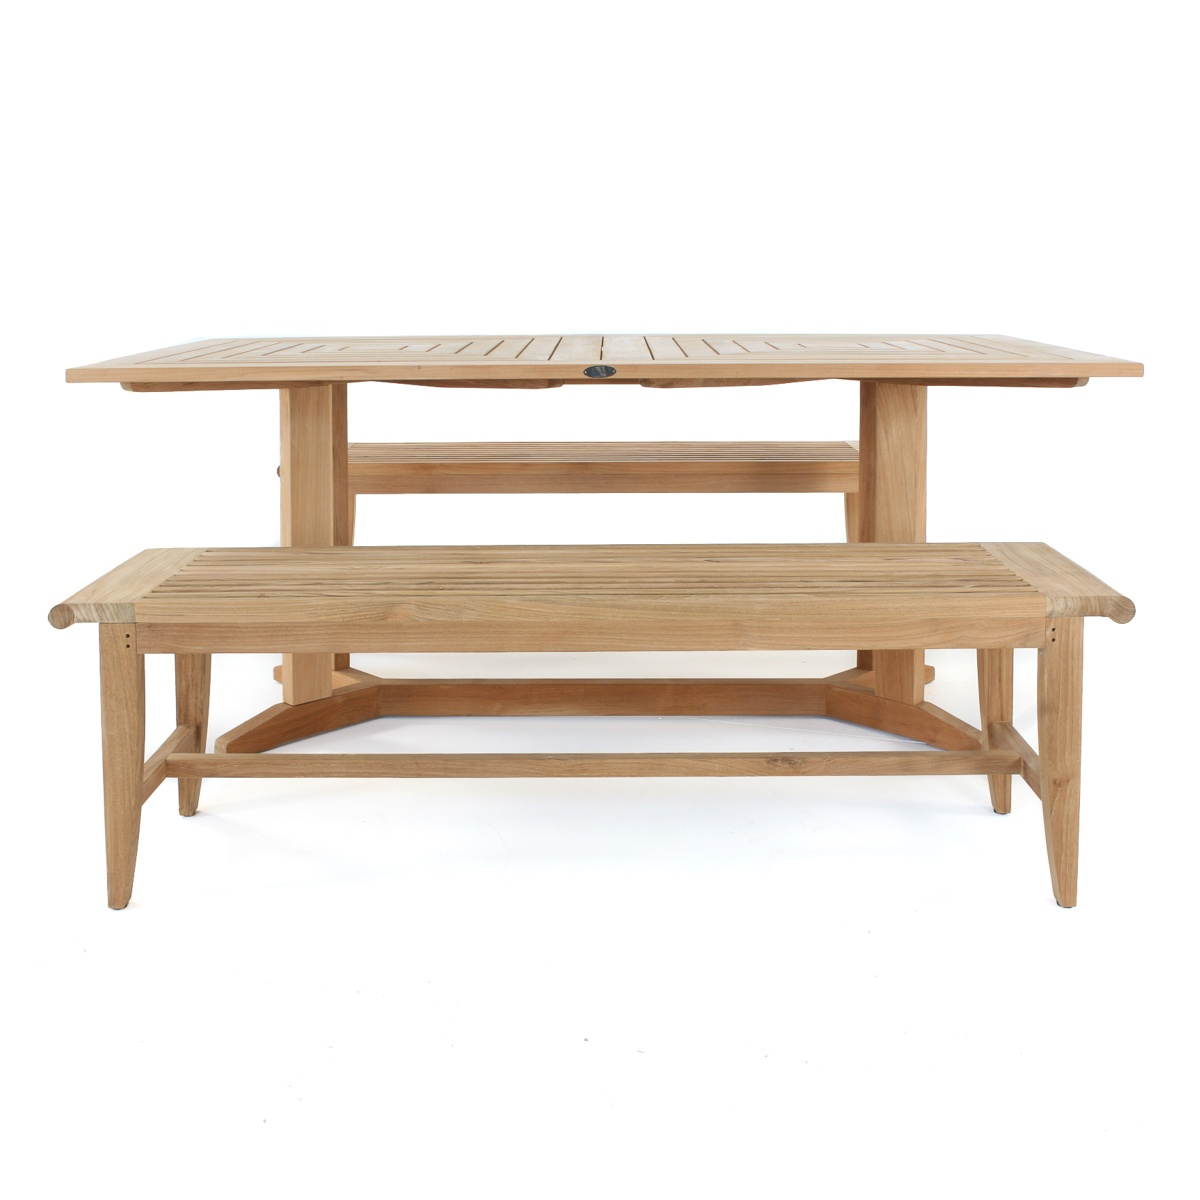 Pyramid Teak Dining Set For 6 People Westminster Teak